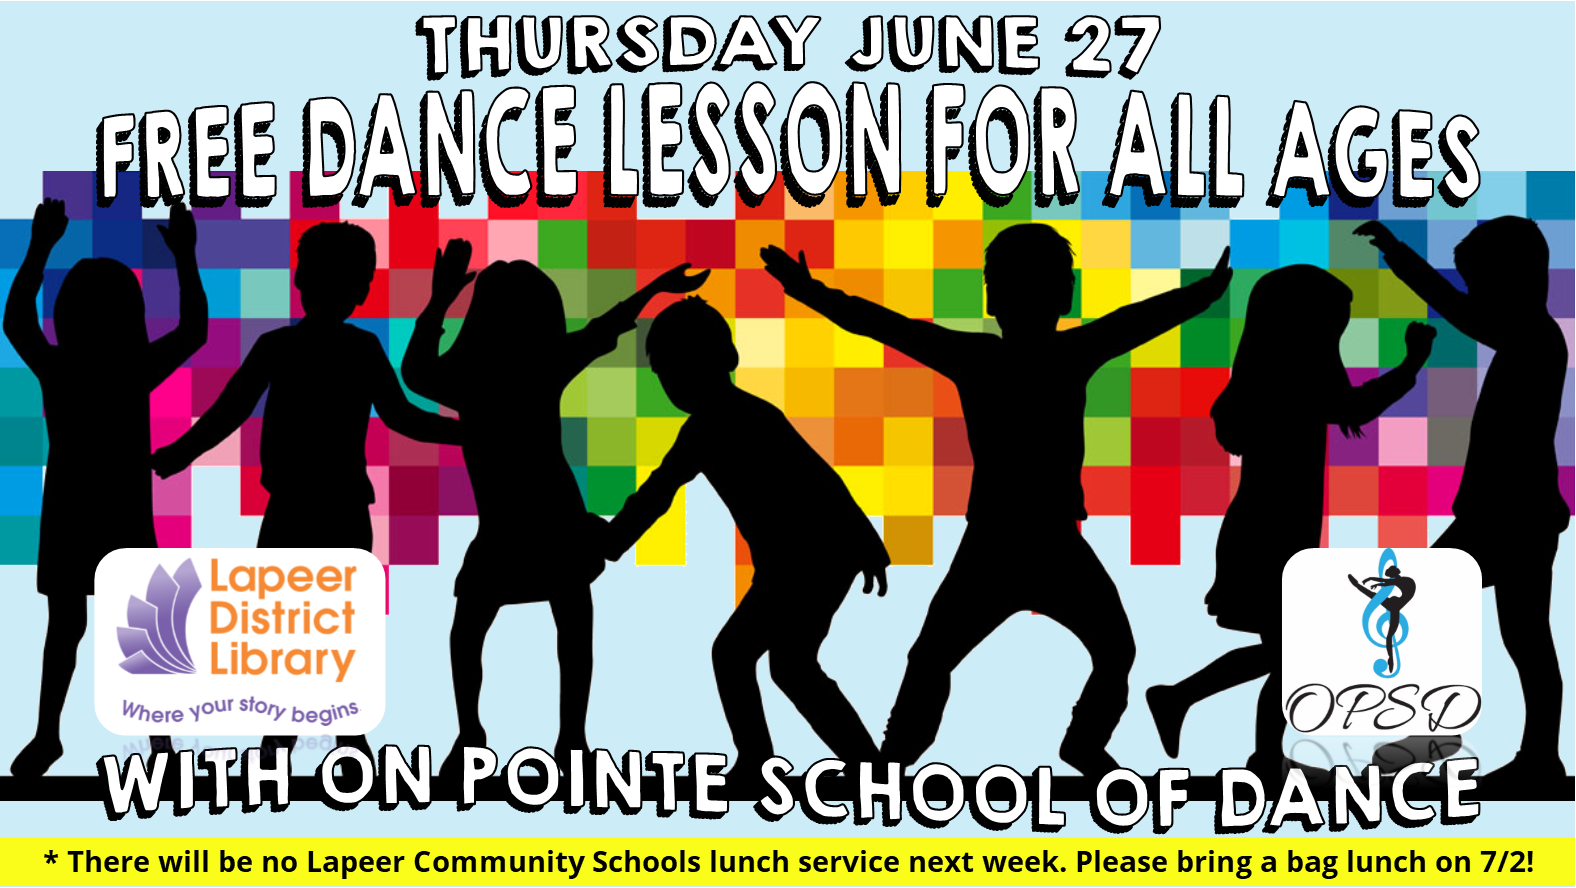 Dance Lesson with On Pointe School of Dance